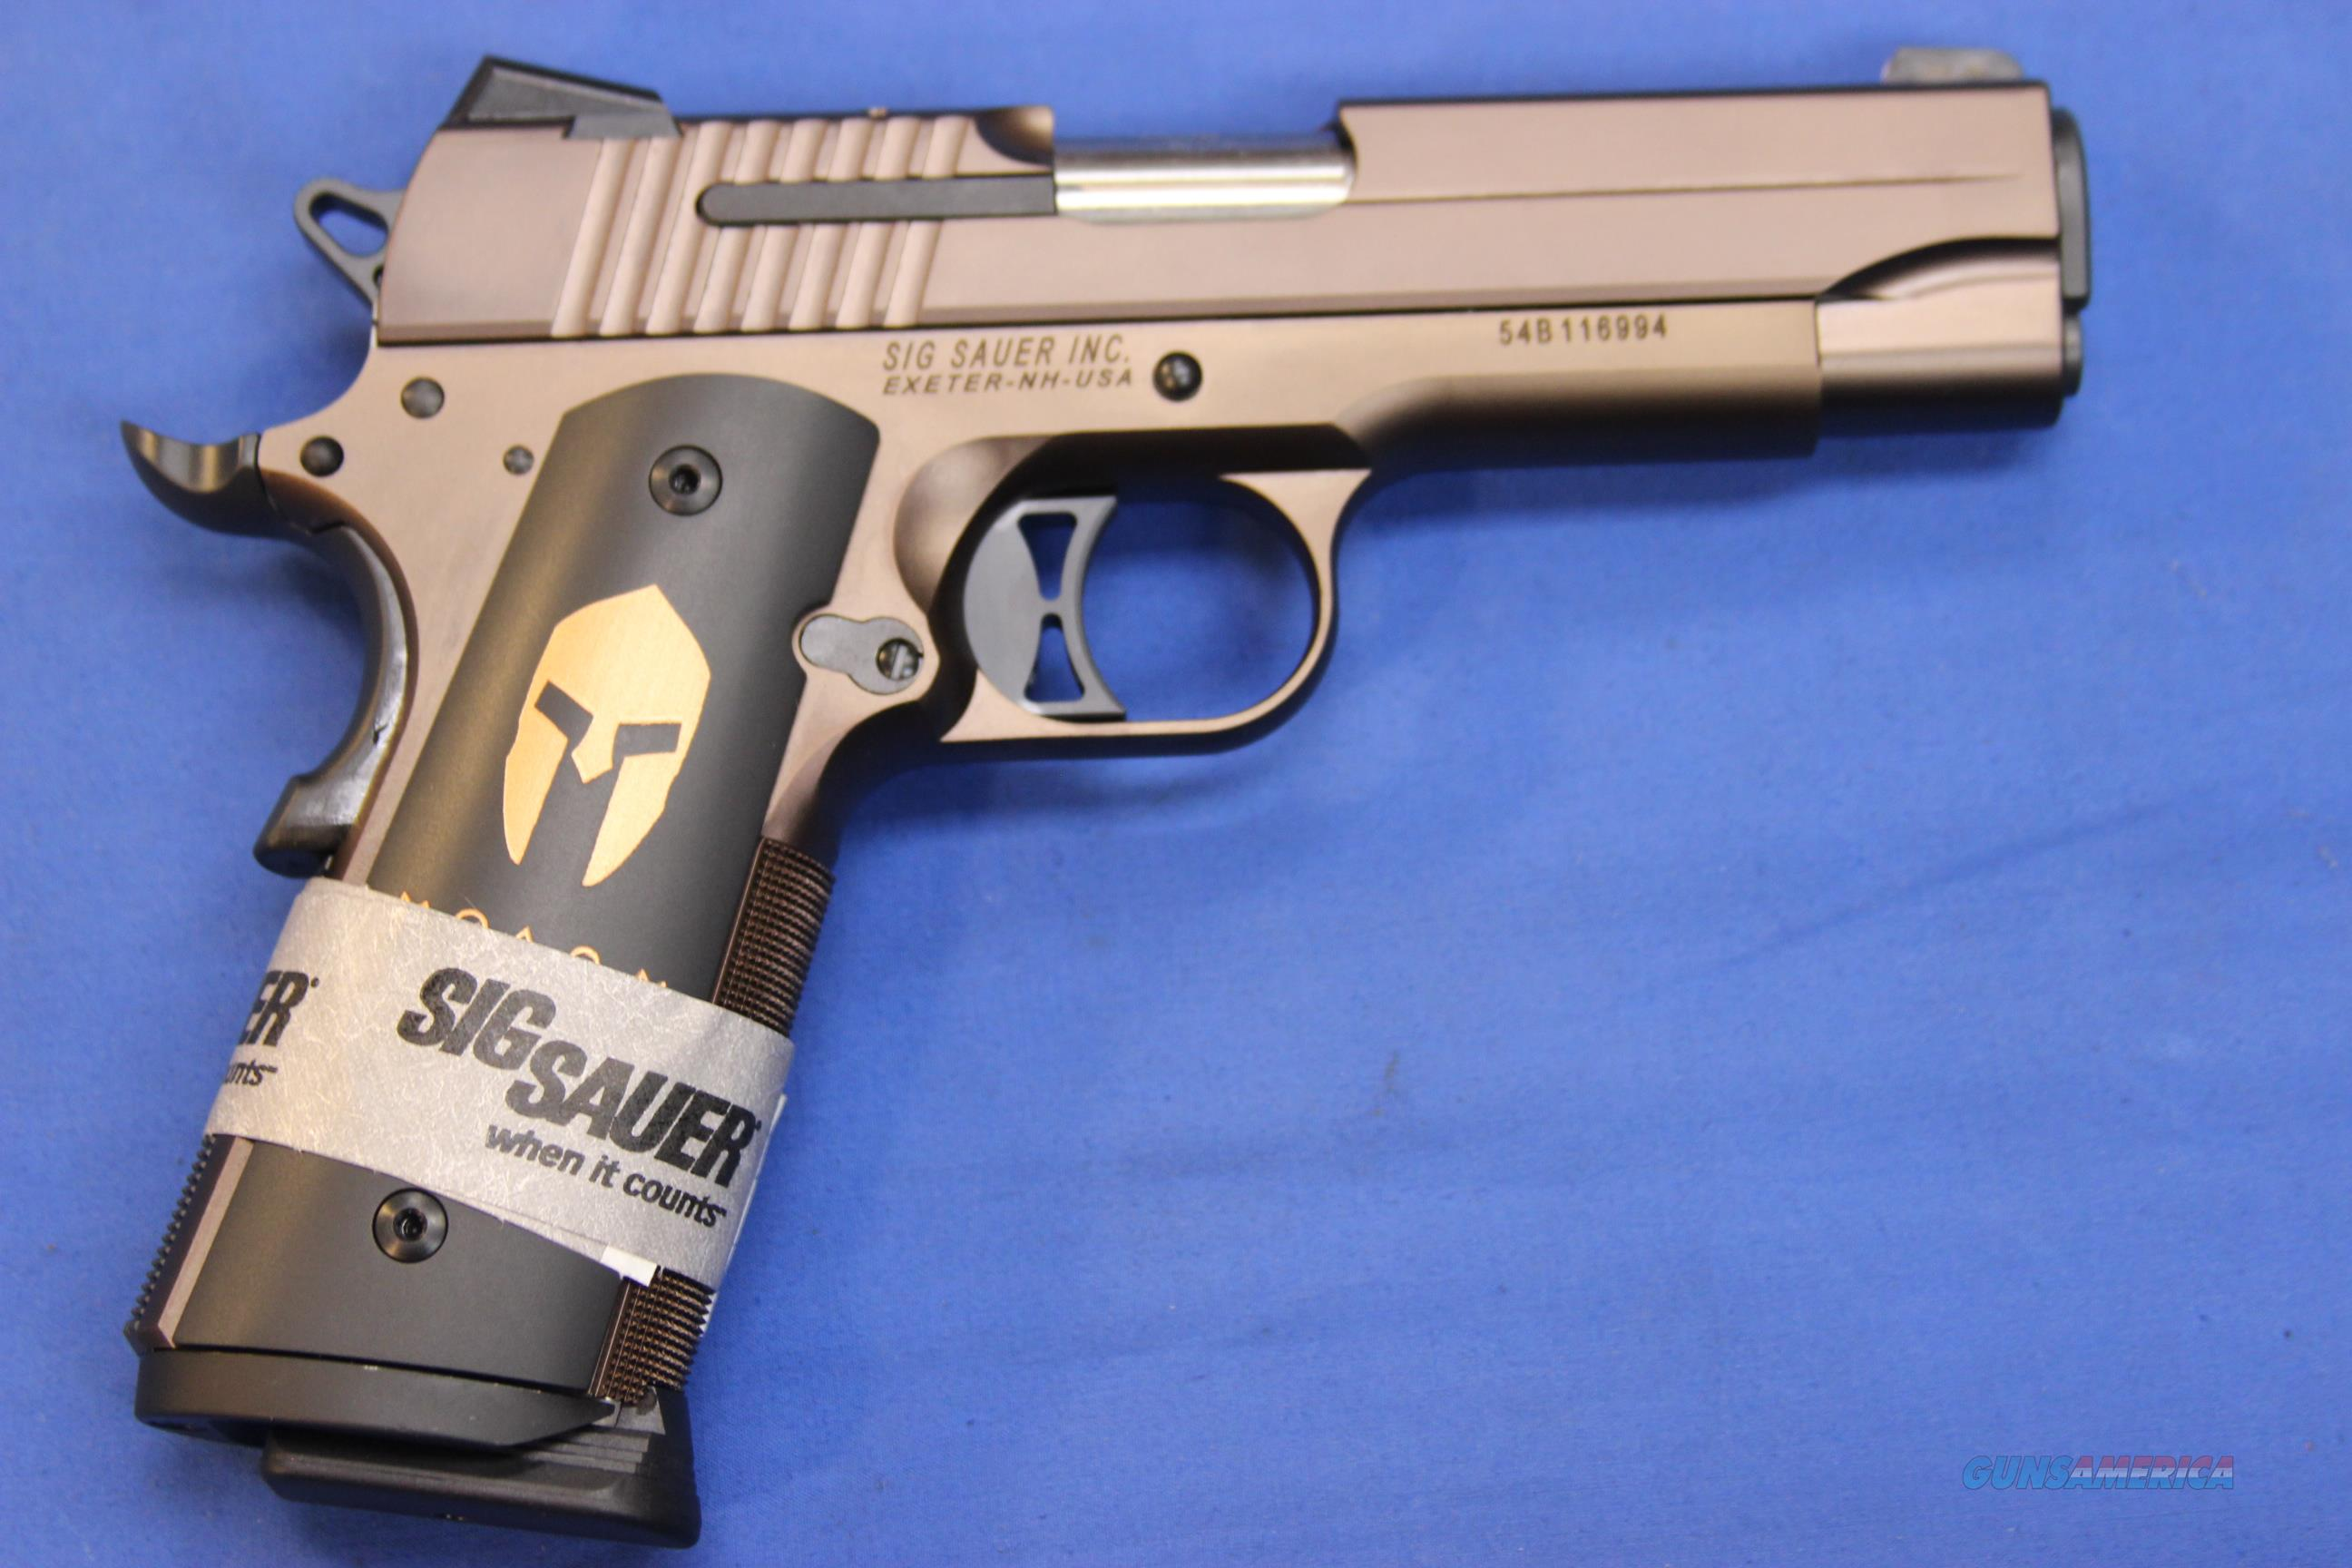 SIG SAUER 1911 CARRY SPARTAN .45 ACP - NEW!   Guns > Pistols > Sig - Sauer/Sigarms Pistols > 1911